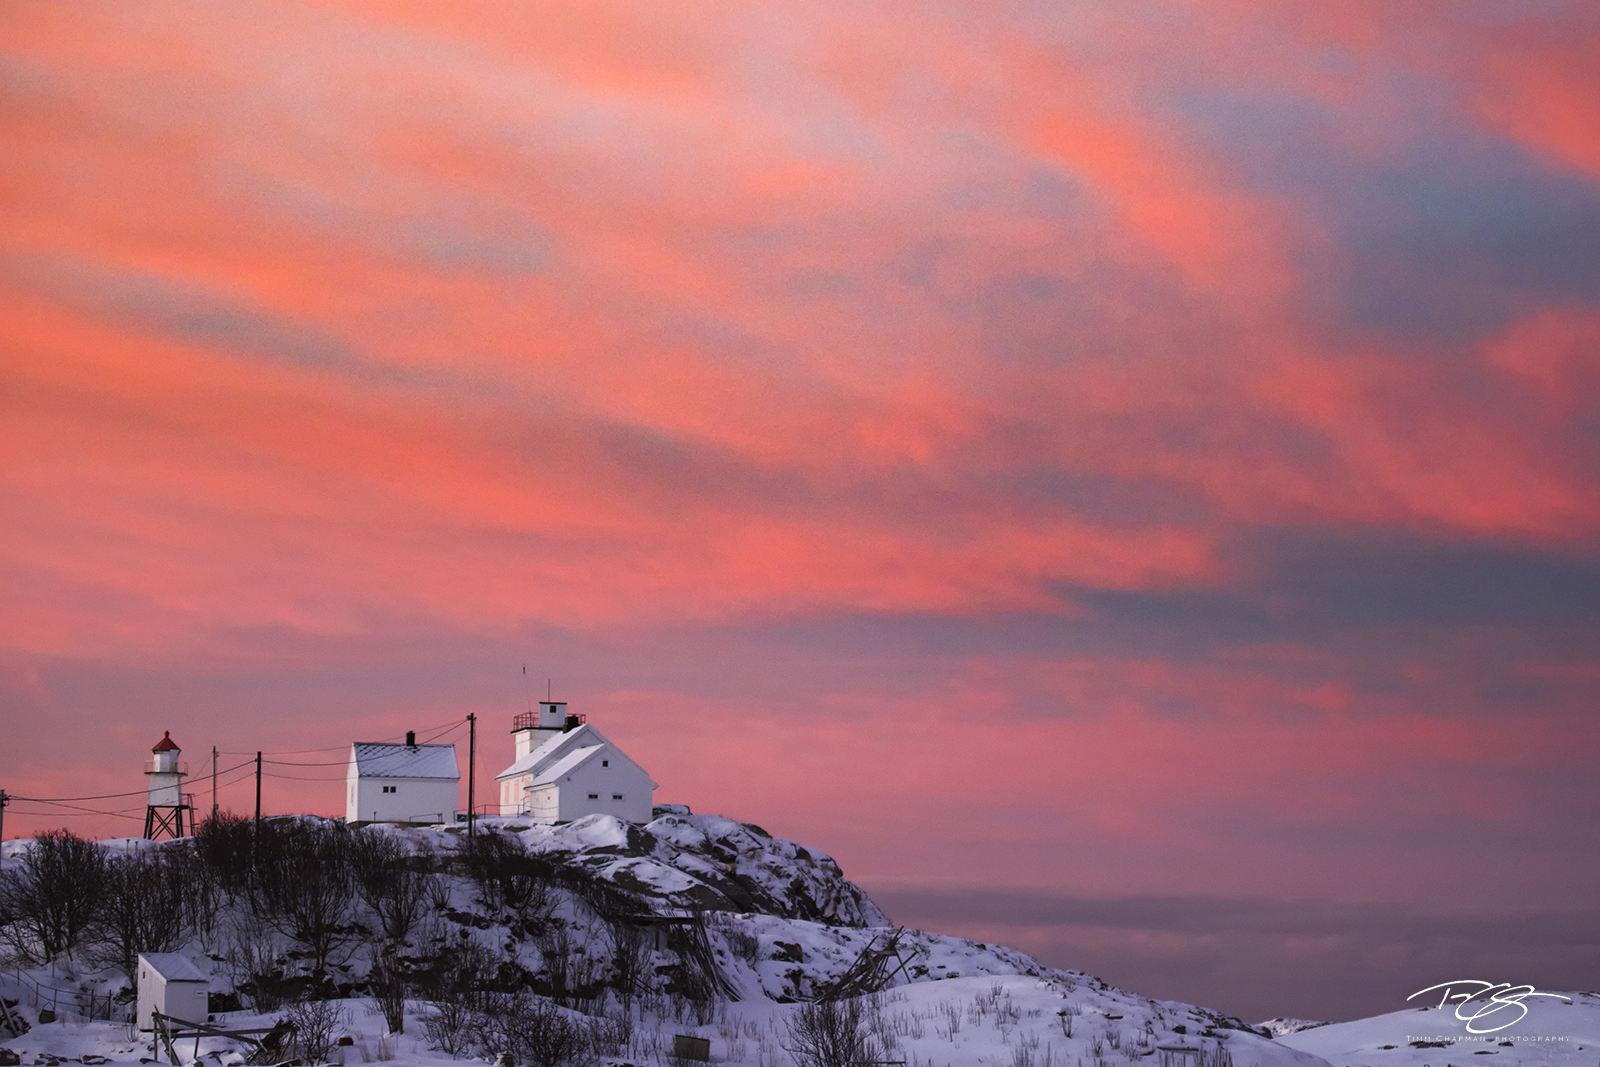 norway, gallery, lofoten, Henningsvær, snowy, fresh snow, henningsvaer, winter, sunrise, predawn, fiery sky, clouds, dawn, lighthouse, Austvågøy, Austvågøya, light, lighthouse